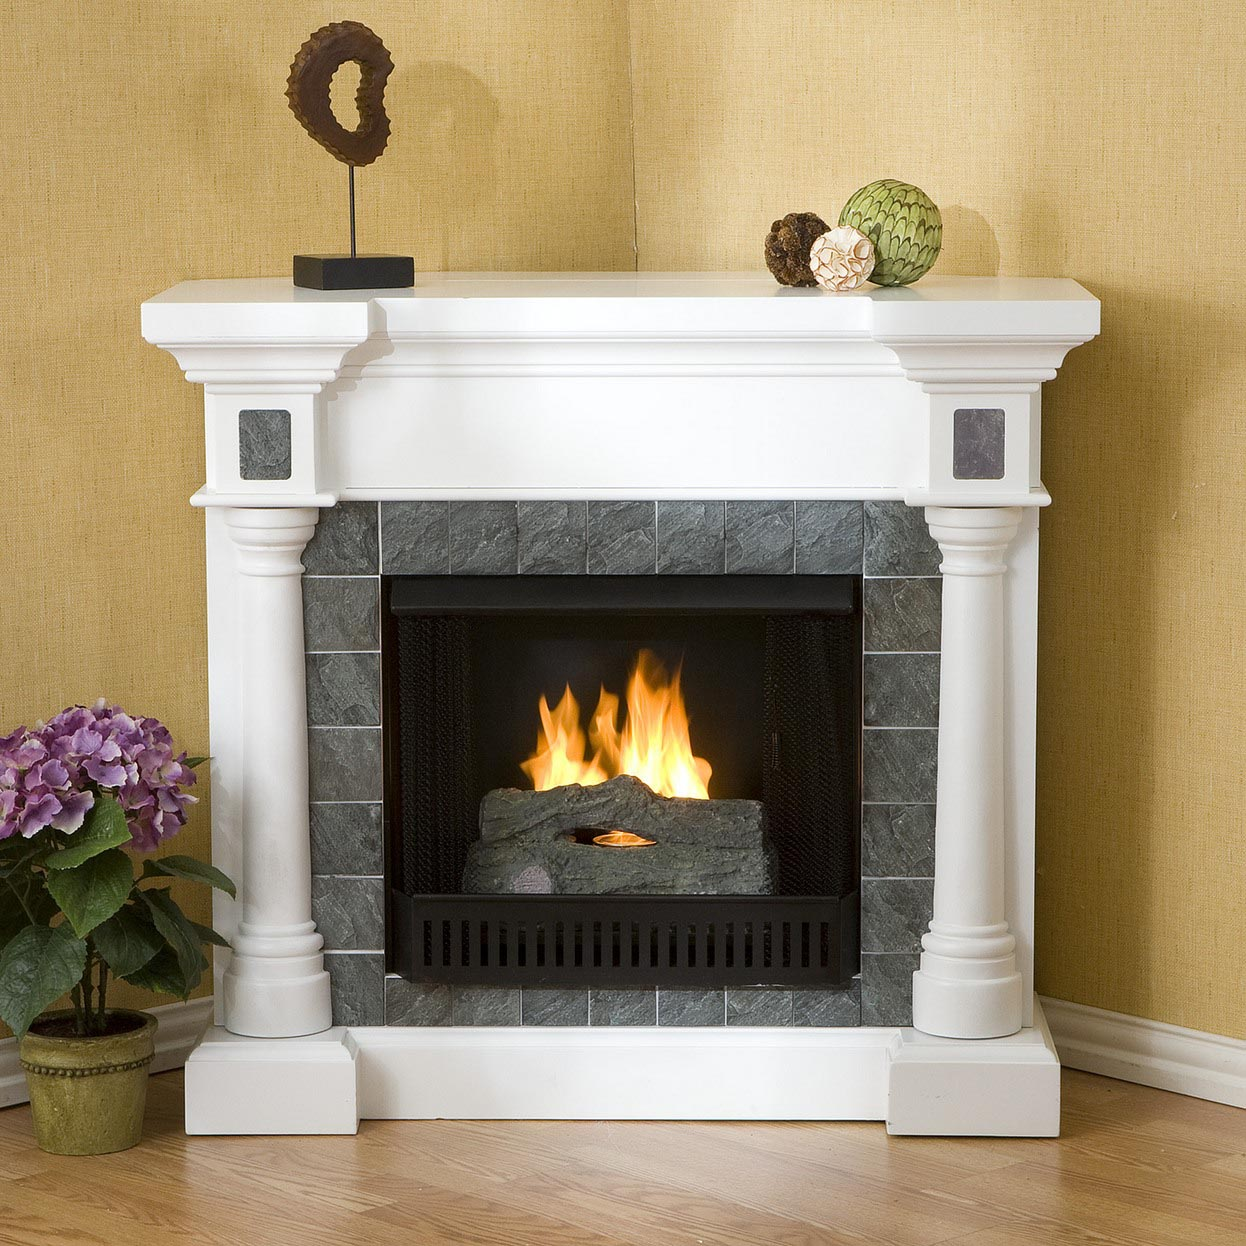 White stone electric fireplace fireplace designs Fireplace design ideas